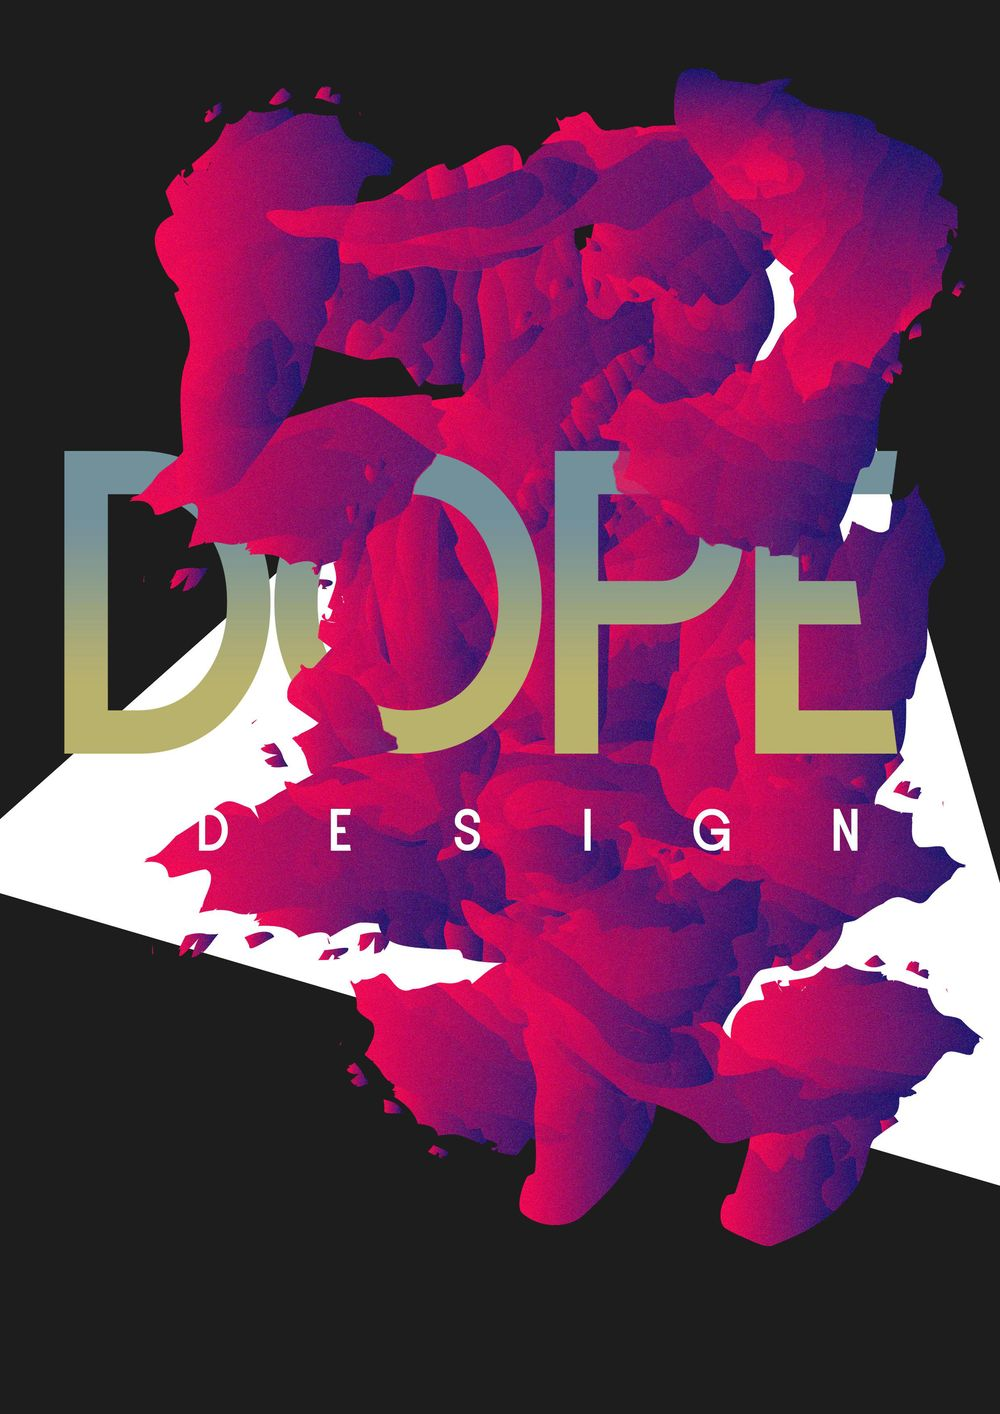 Dope - image 2 - student project